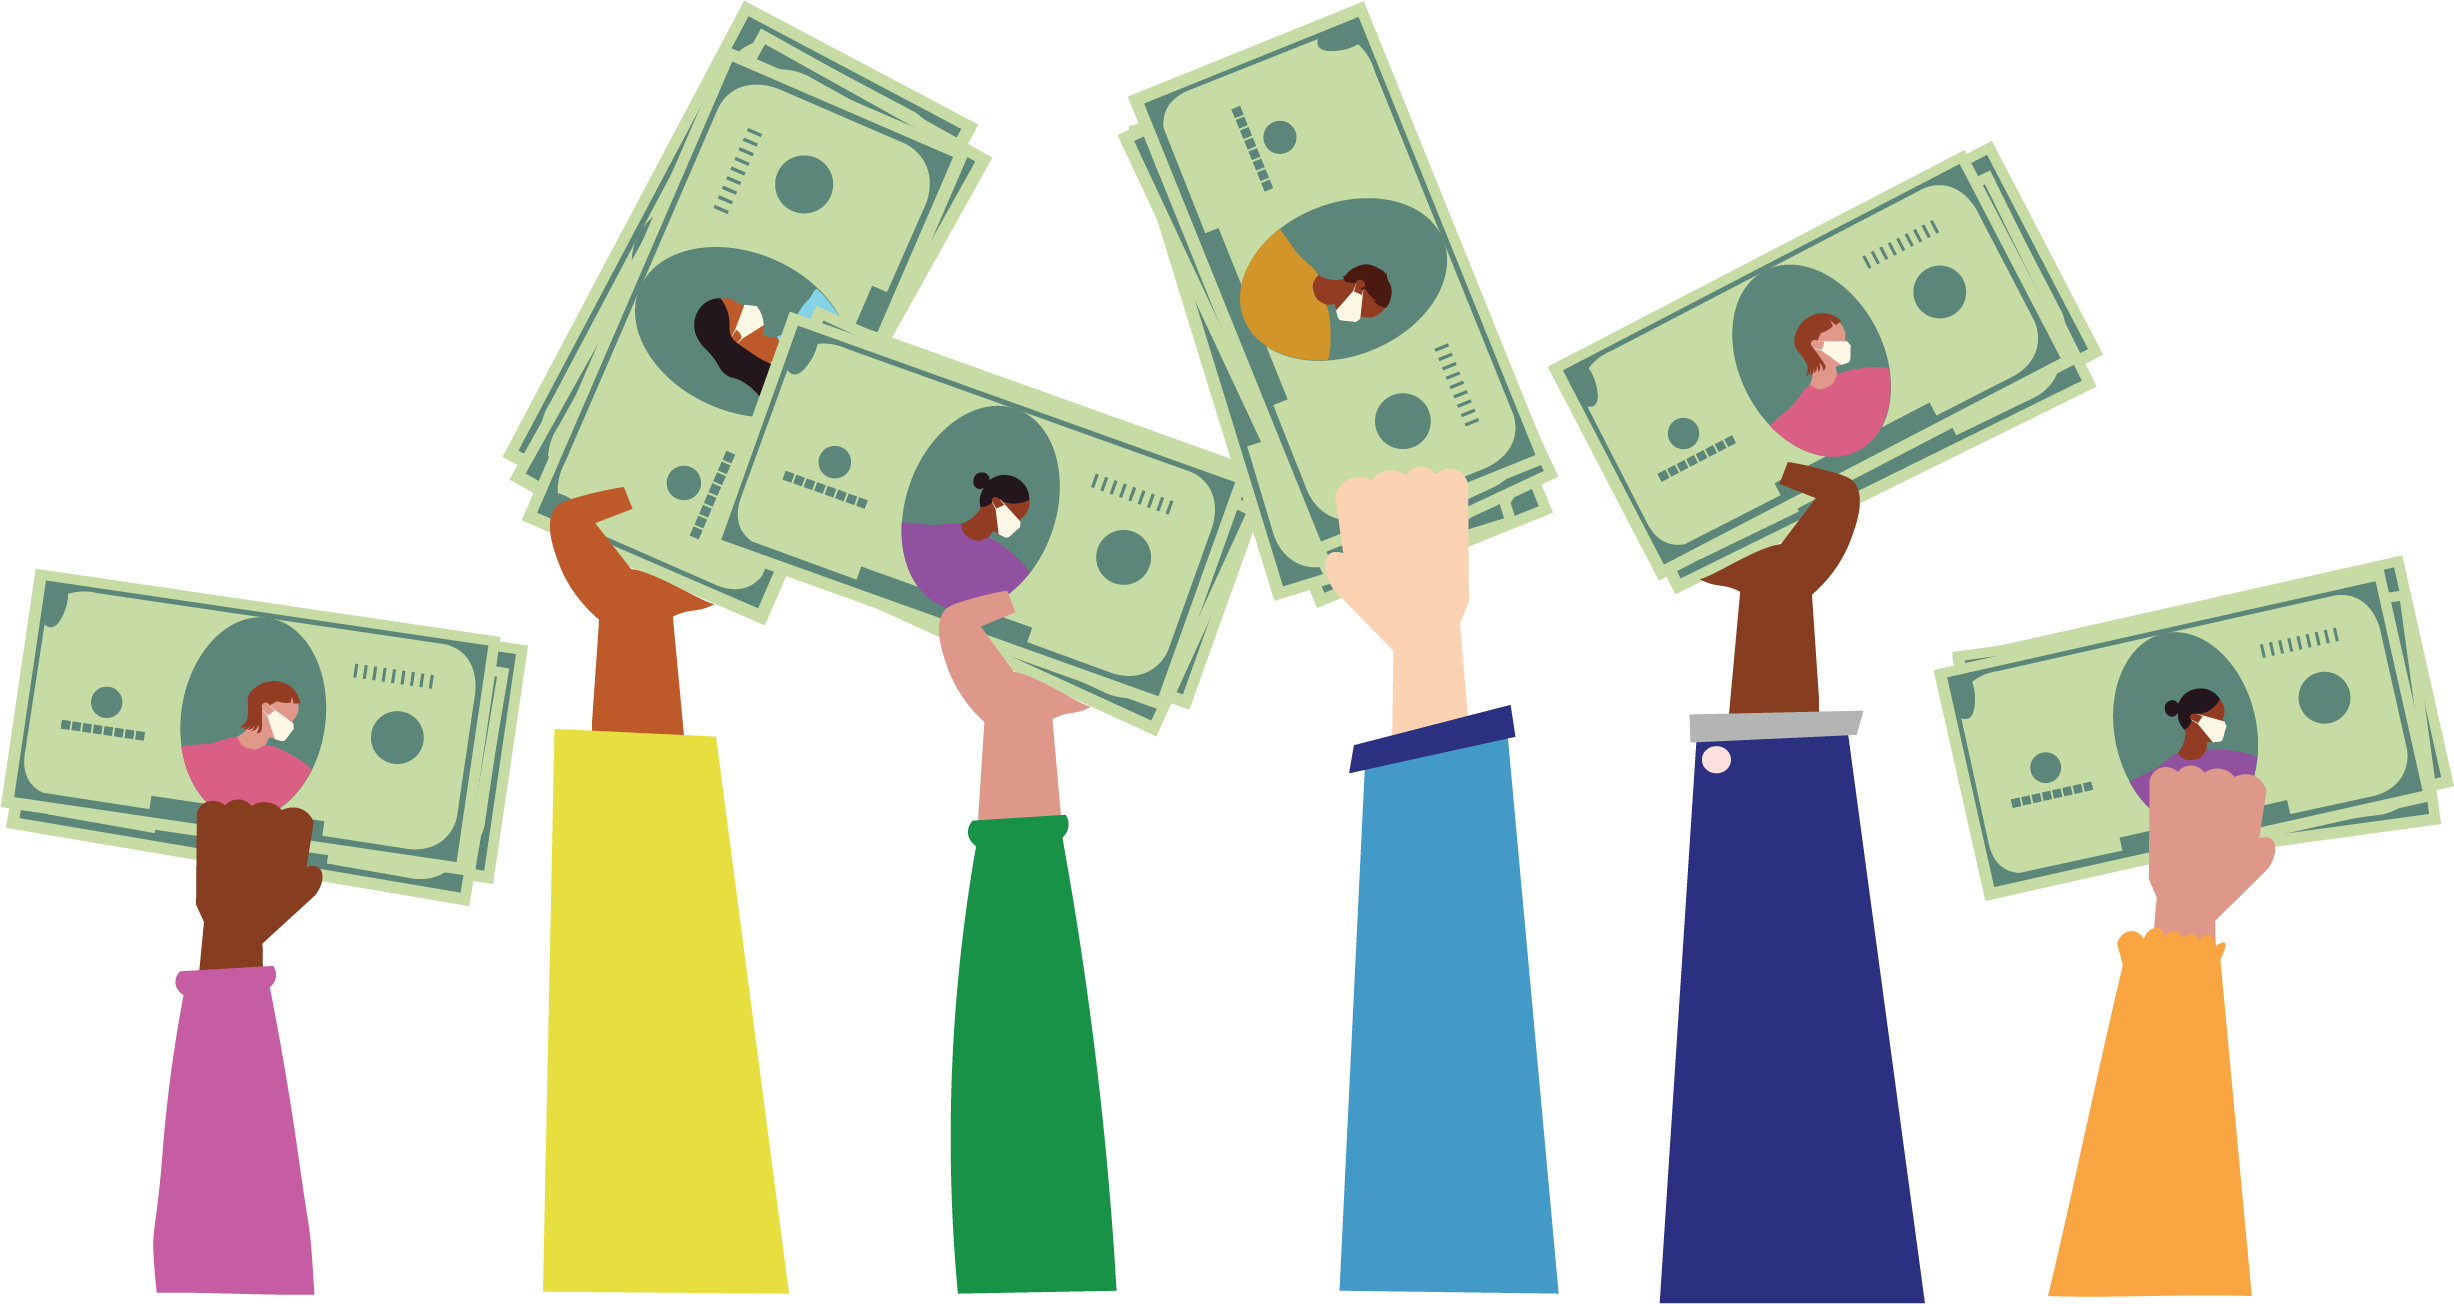 Digital illustration of 6 arms of different people each clutching their green money in their hands. On the money are people of different races wearing surgical masks.